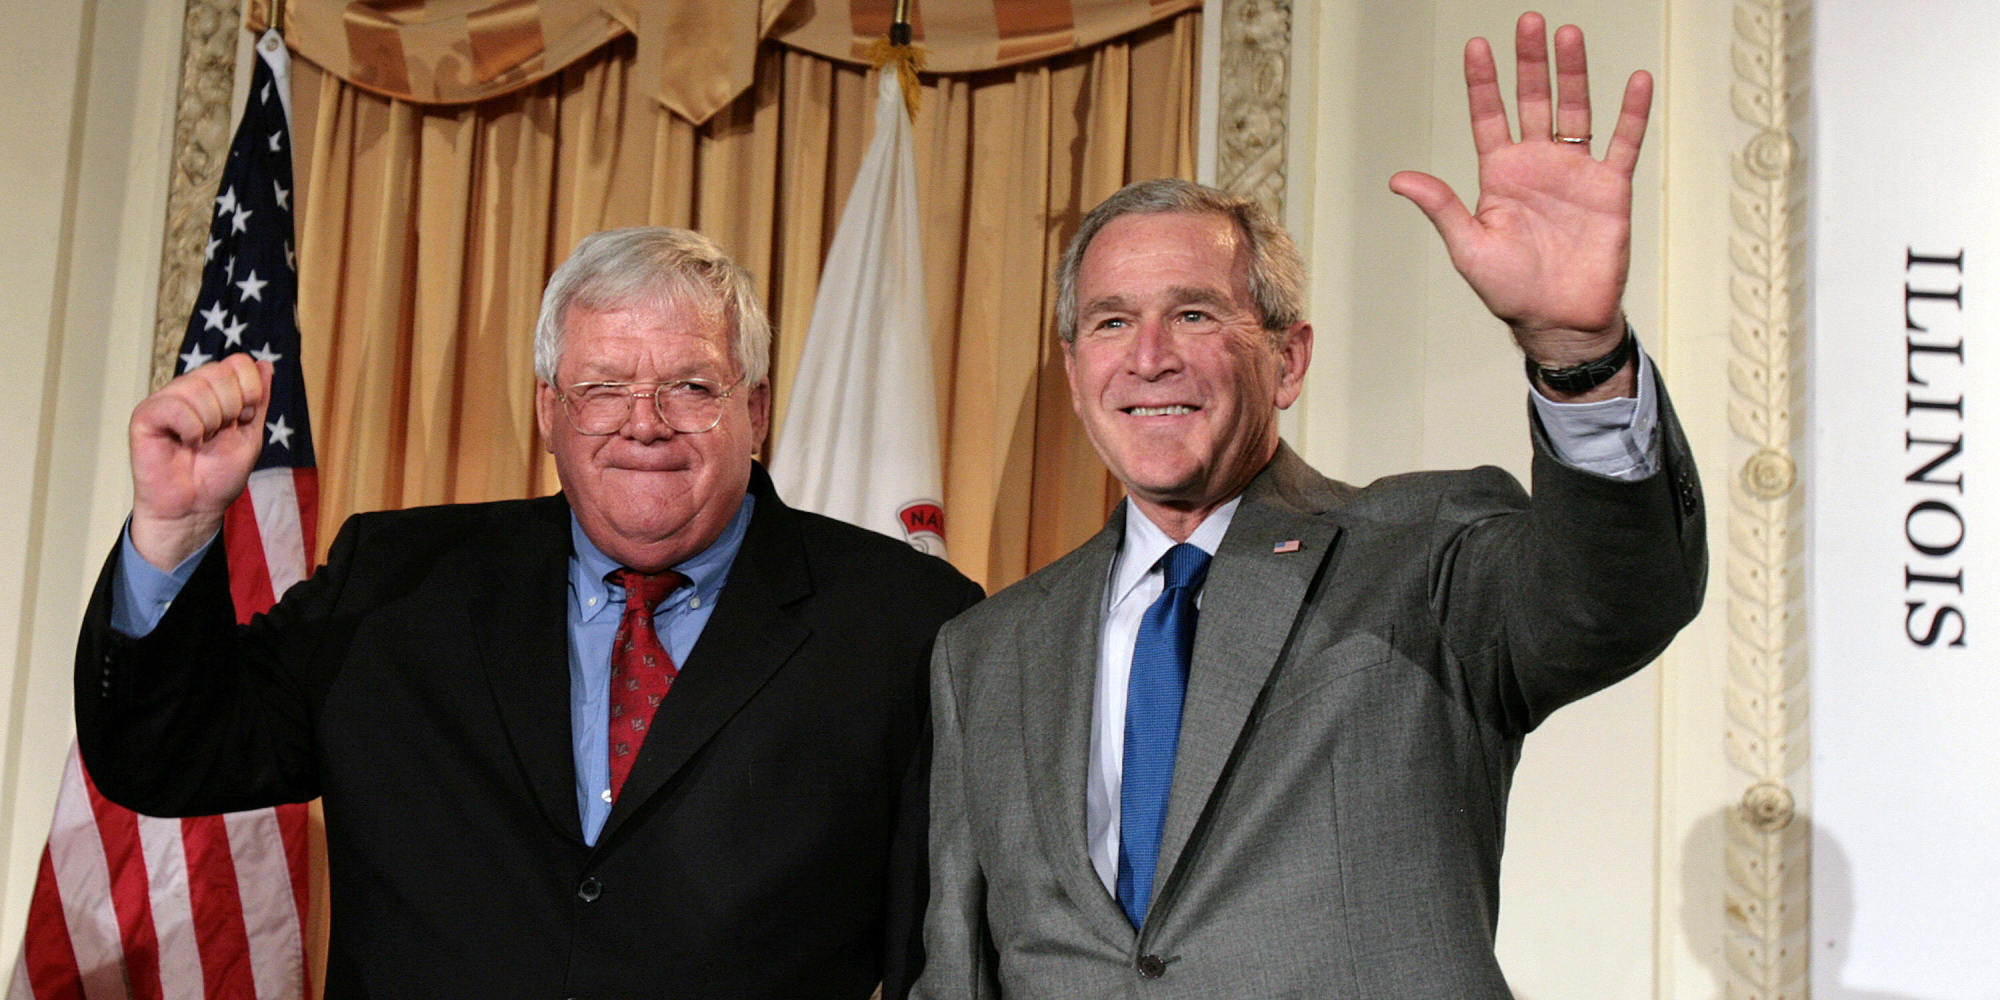 Patriot Act That Dennis Hastert Passed Led To His ...